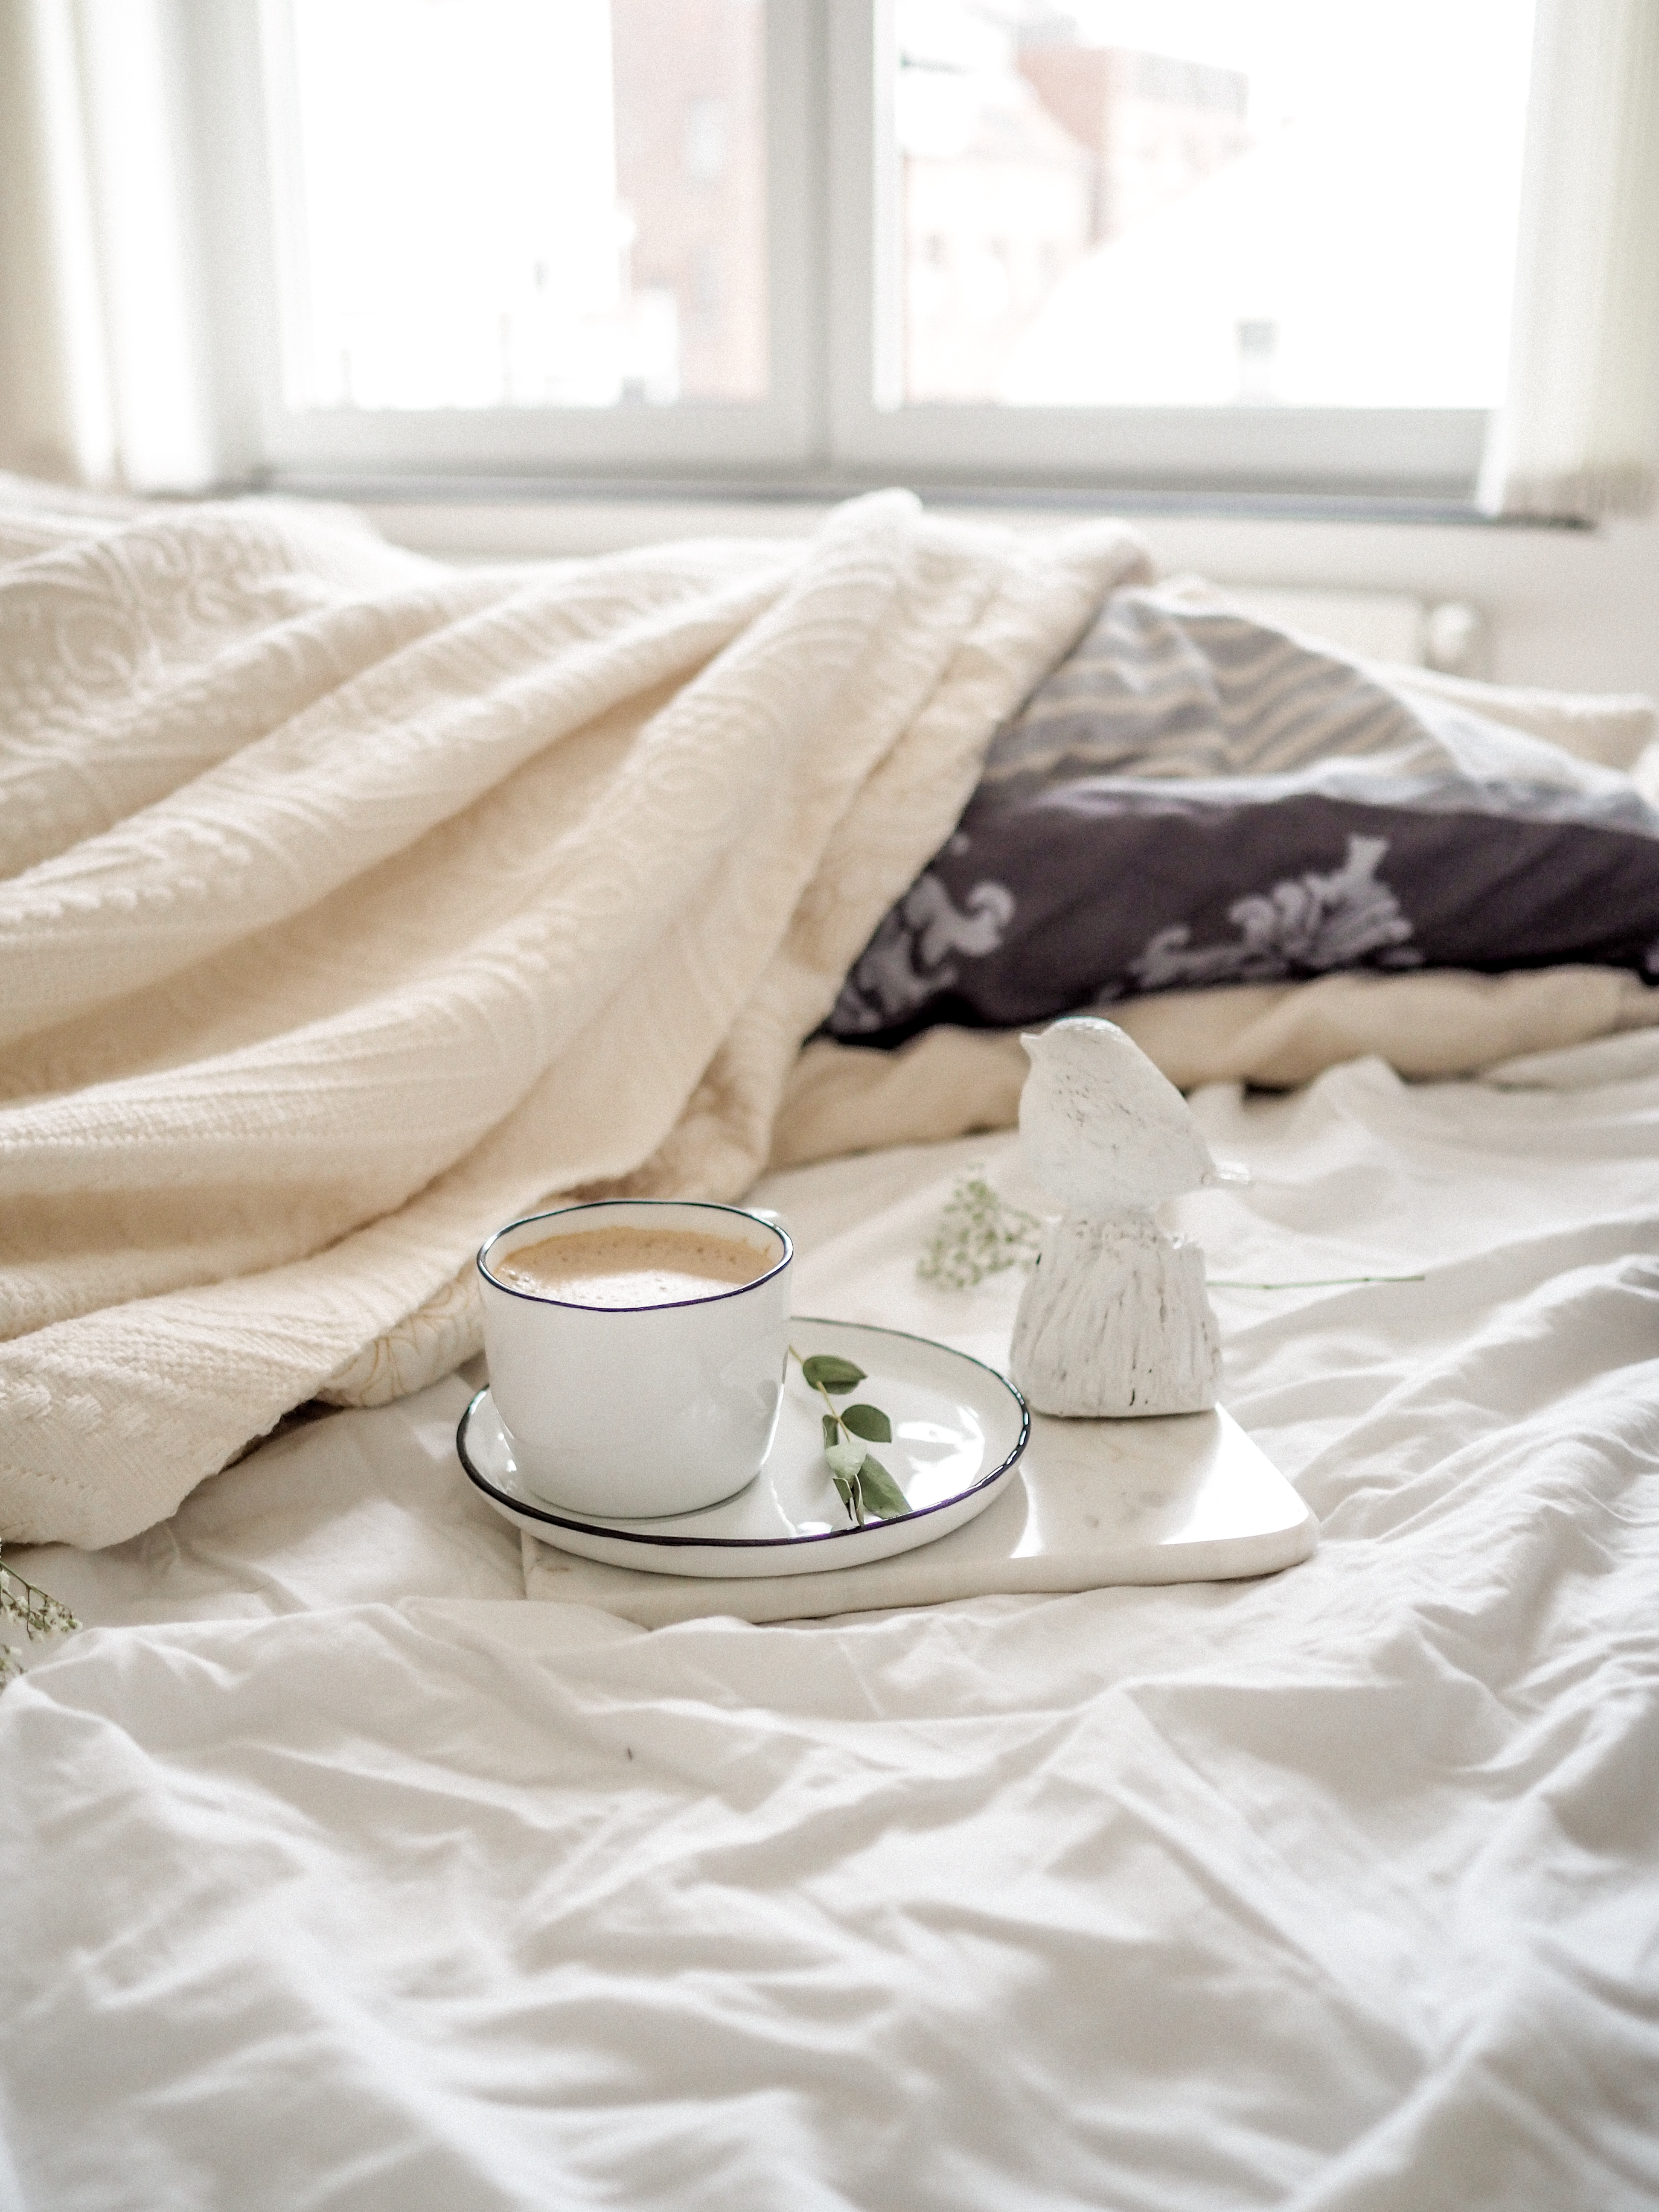 5 Tips To Keep Warm in Bed This Winter